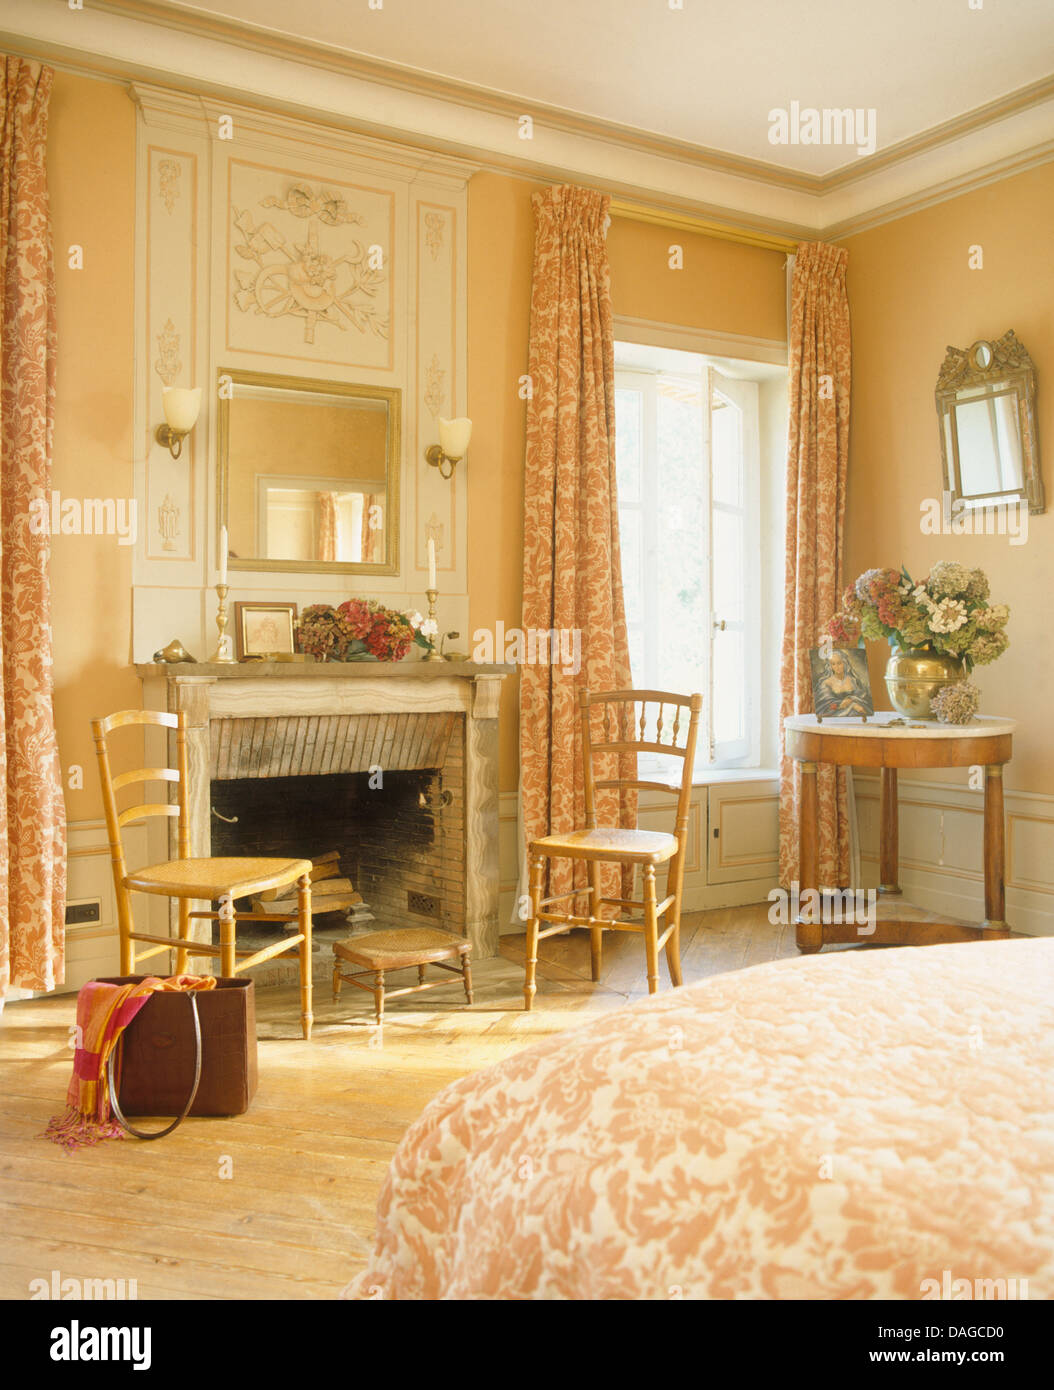 Antique Chairs On Either Side Of Fireplace In Bedroom Of French Chateau  With Vase Of Flowers On Small Table Beside Window